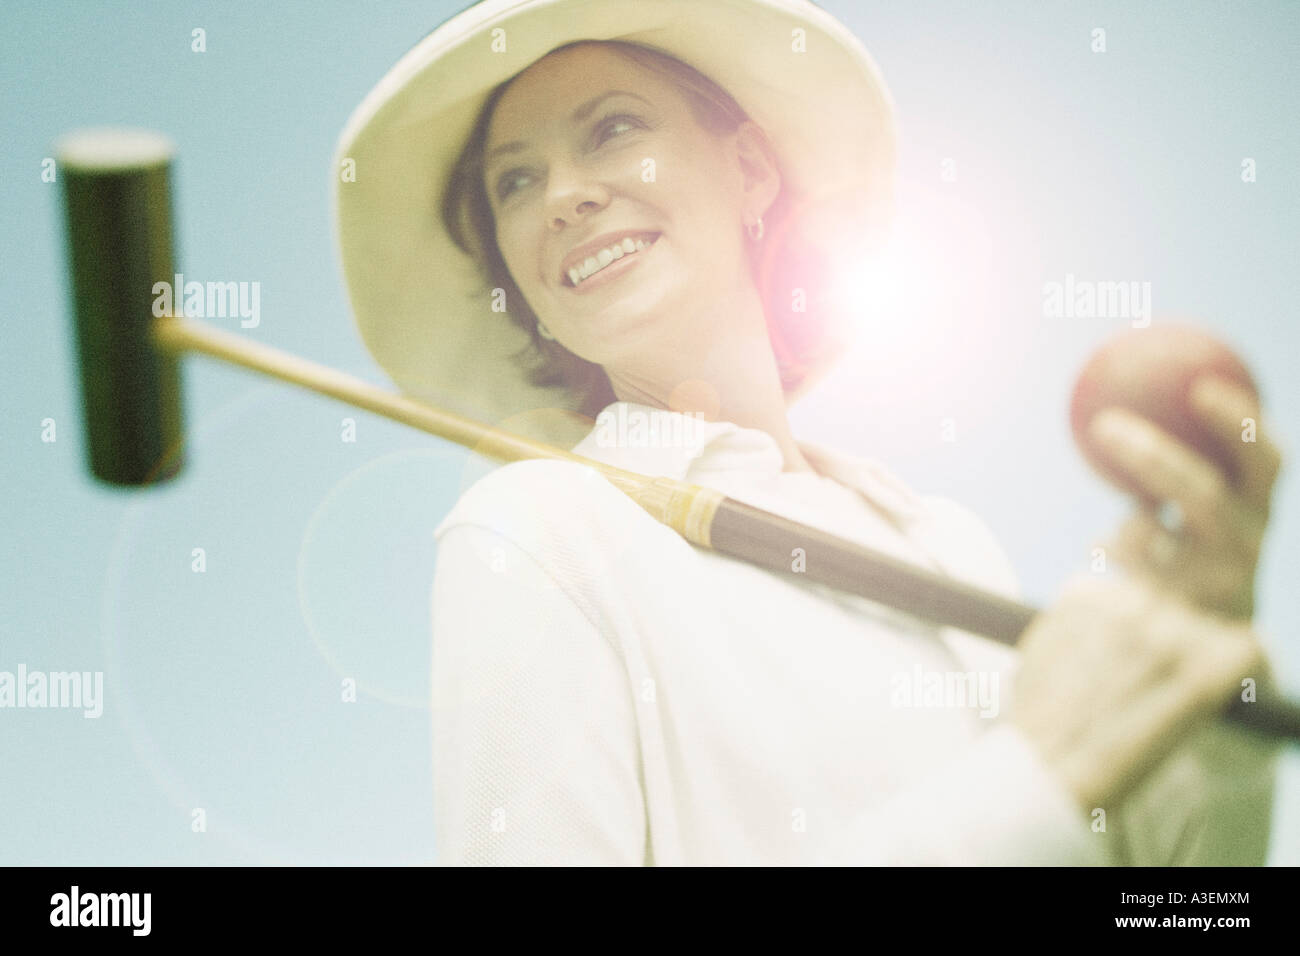 Low angle view of a mid adult woman holding a croquet mallet and a ball Stock Photo